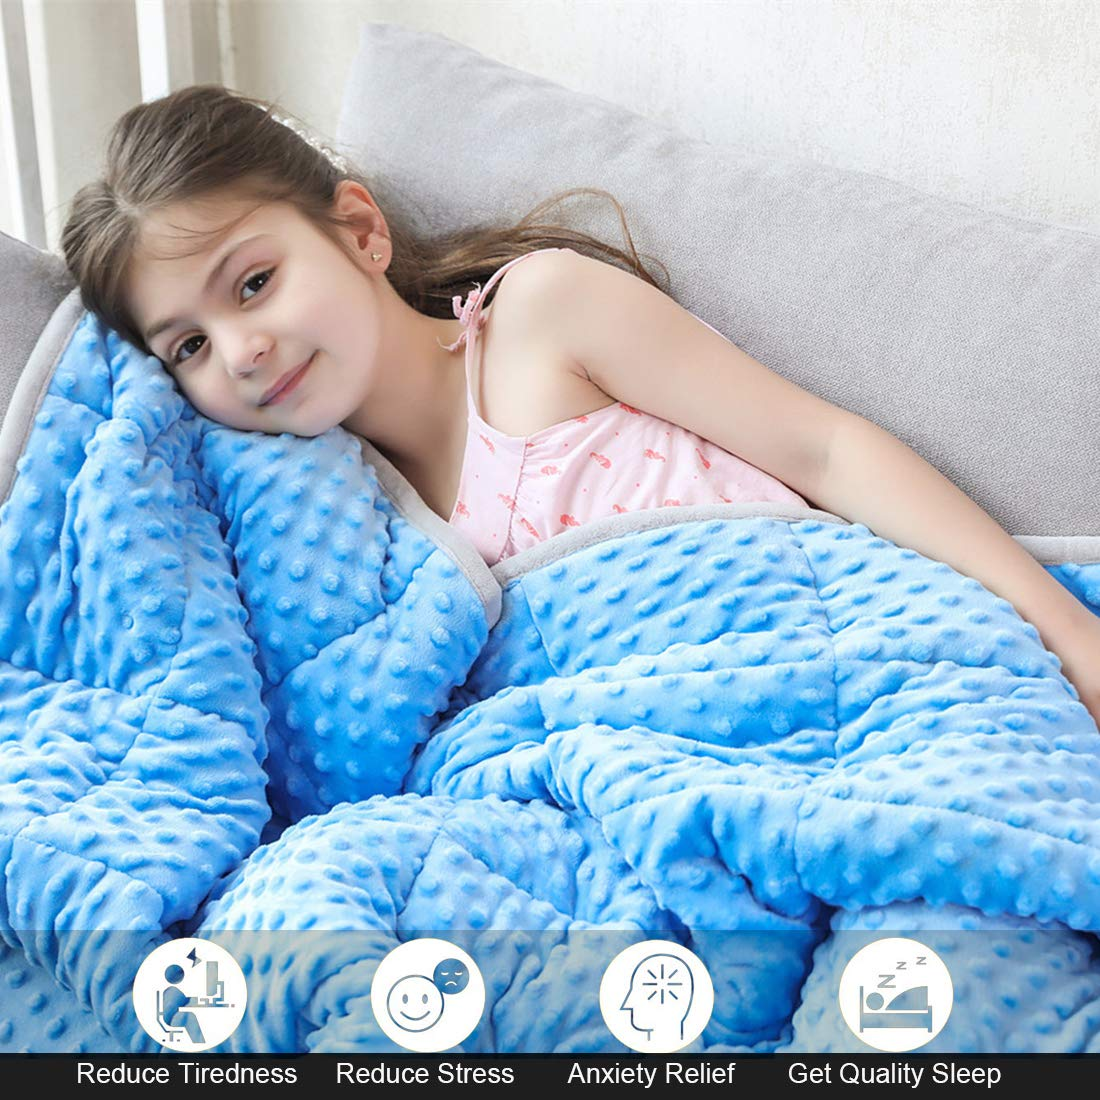 JHMENG Weighted Blanket for Kids(5lbs for 30-70 lbs) Heavy Blanket Soft Minky with Nontoxic Glass Beads for Calm Sleeping(Blue-Minky Cover,36''x48'' 5lbs) by JHMENG